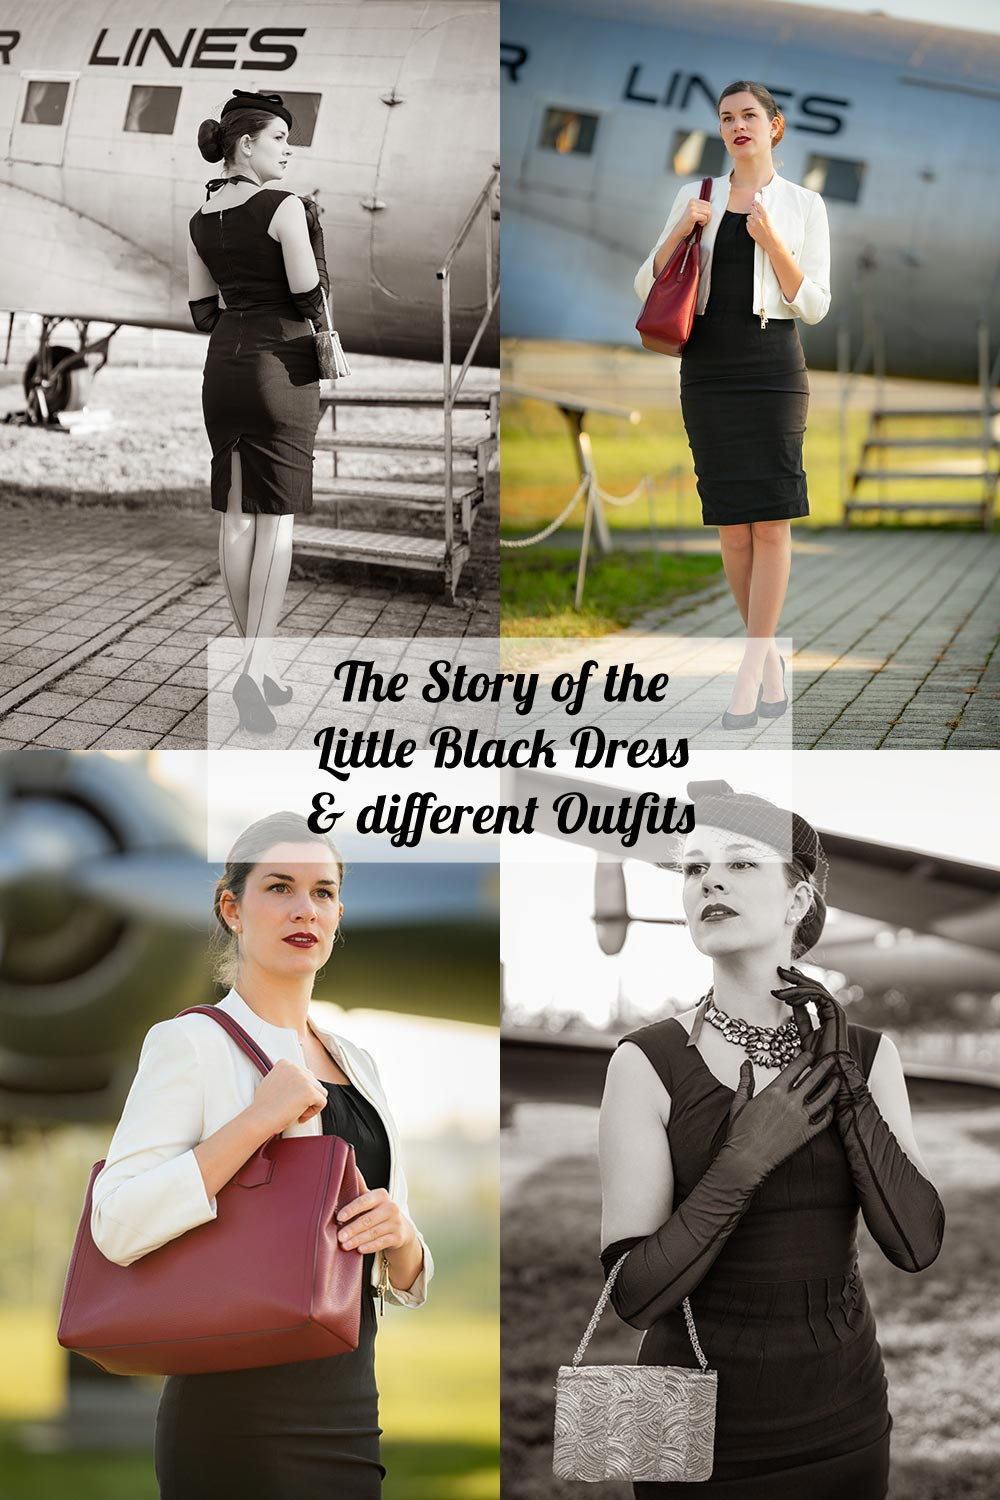 The story of the little black dress and different outfits